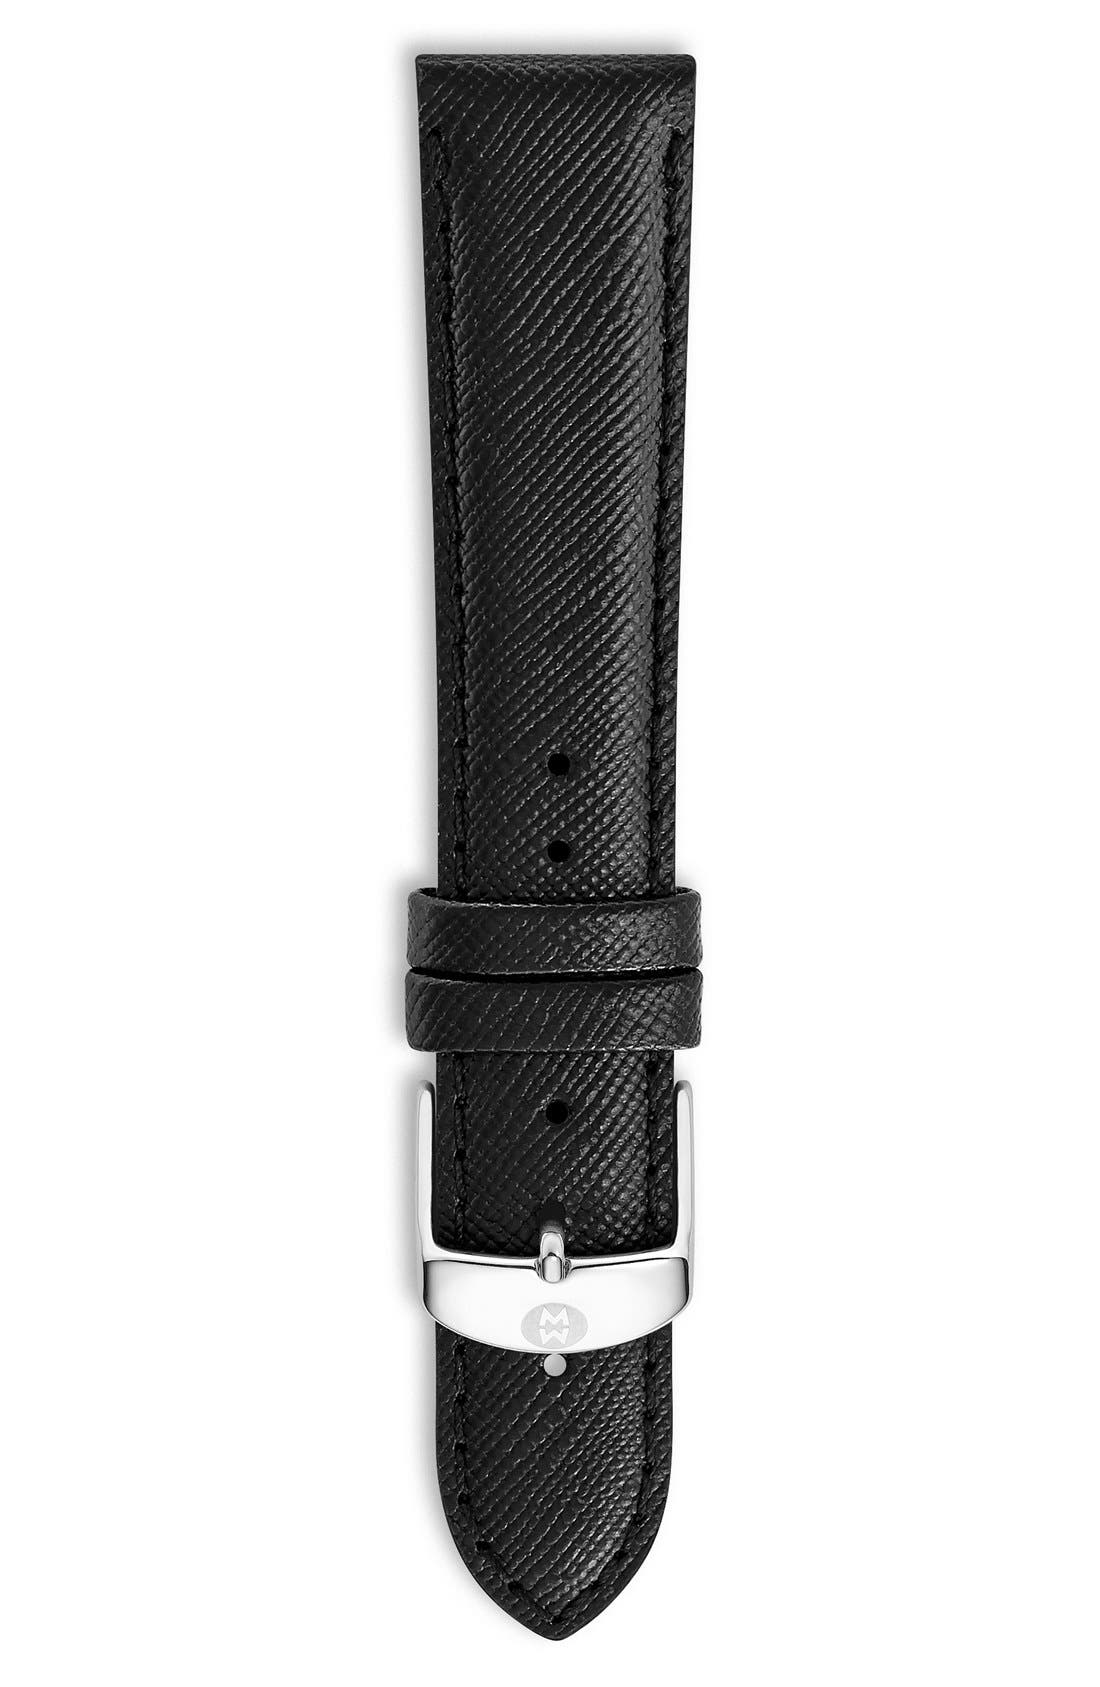 18mm Saffiano Leather Watch Strap,                         Main,                         color,